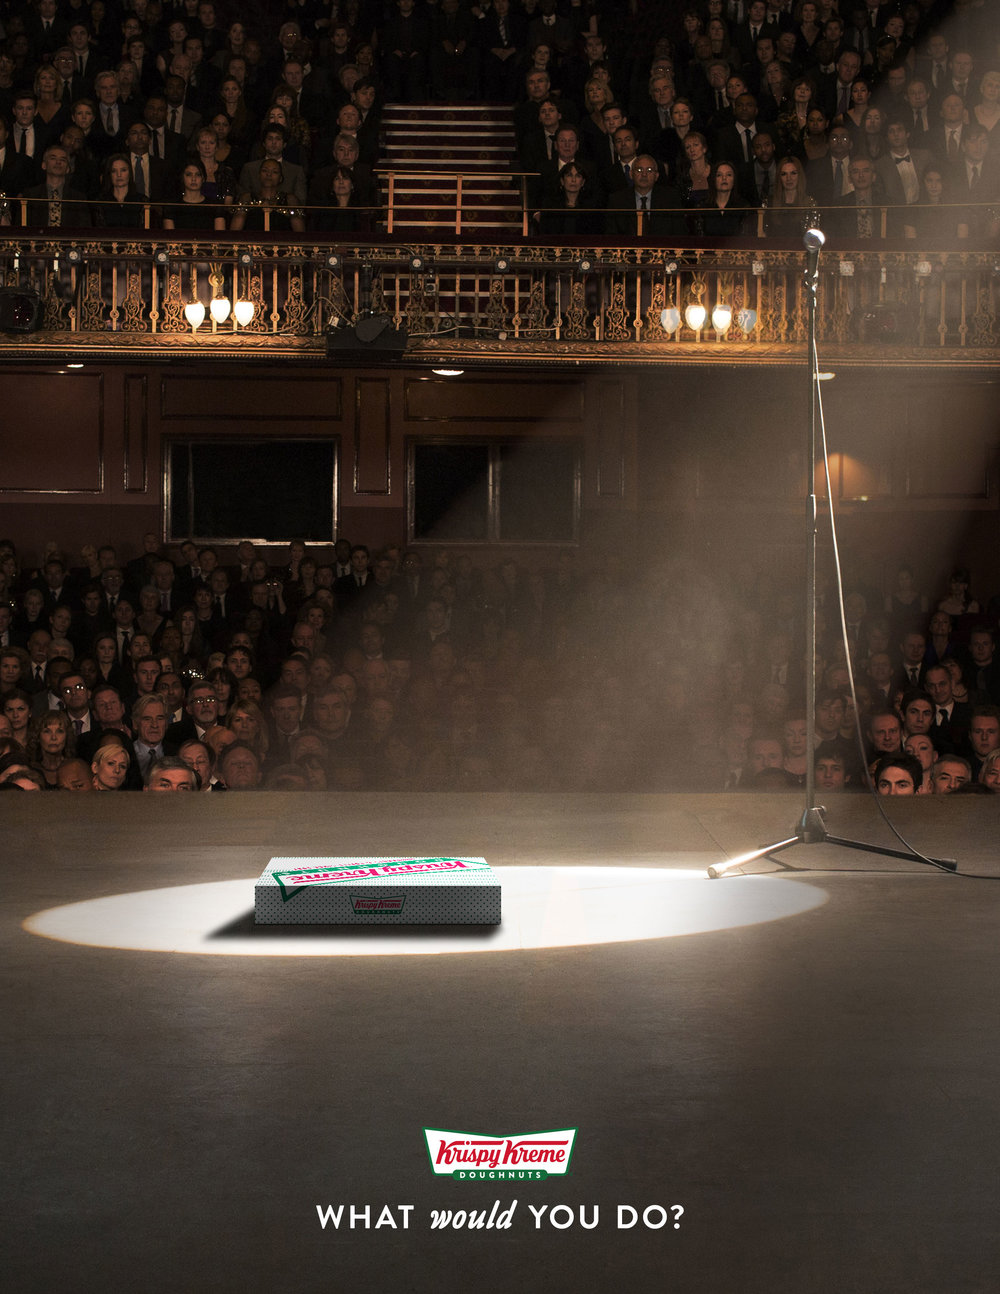 Would you step out onto a stage with an audience staring at you for a doughnut?